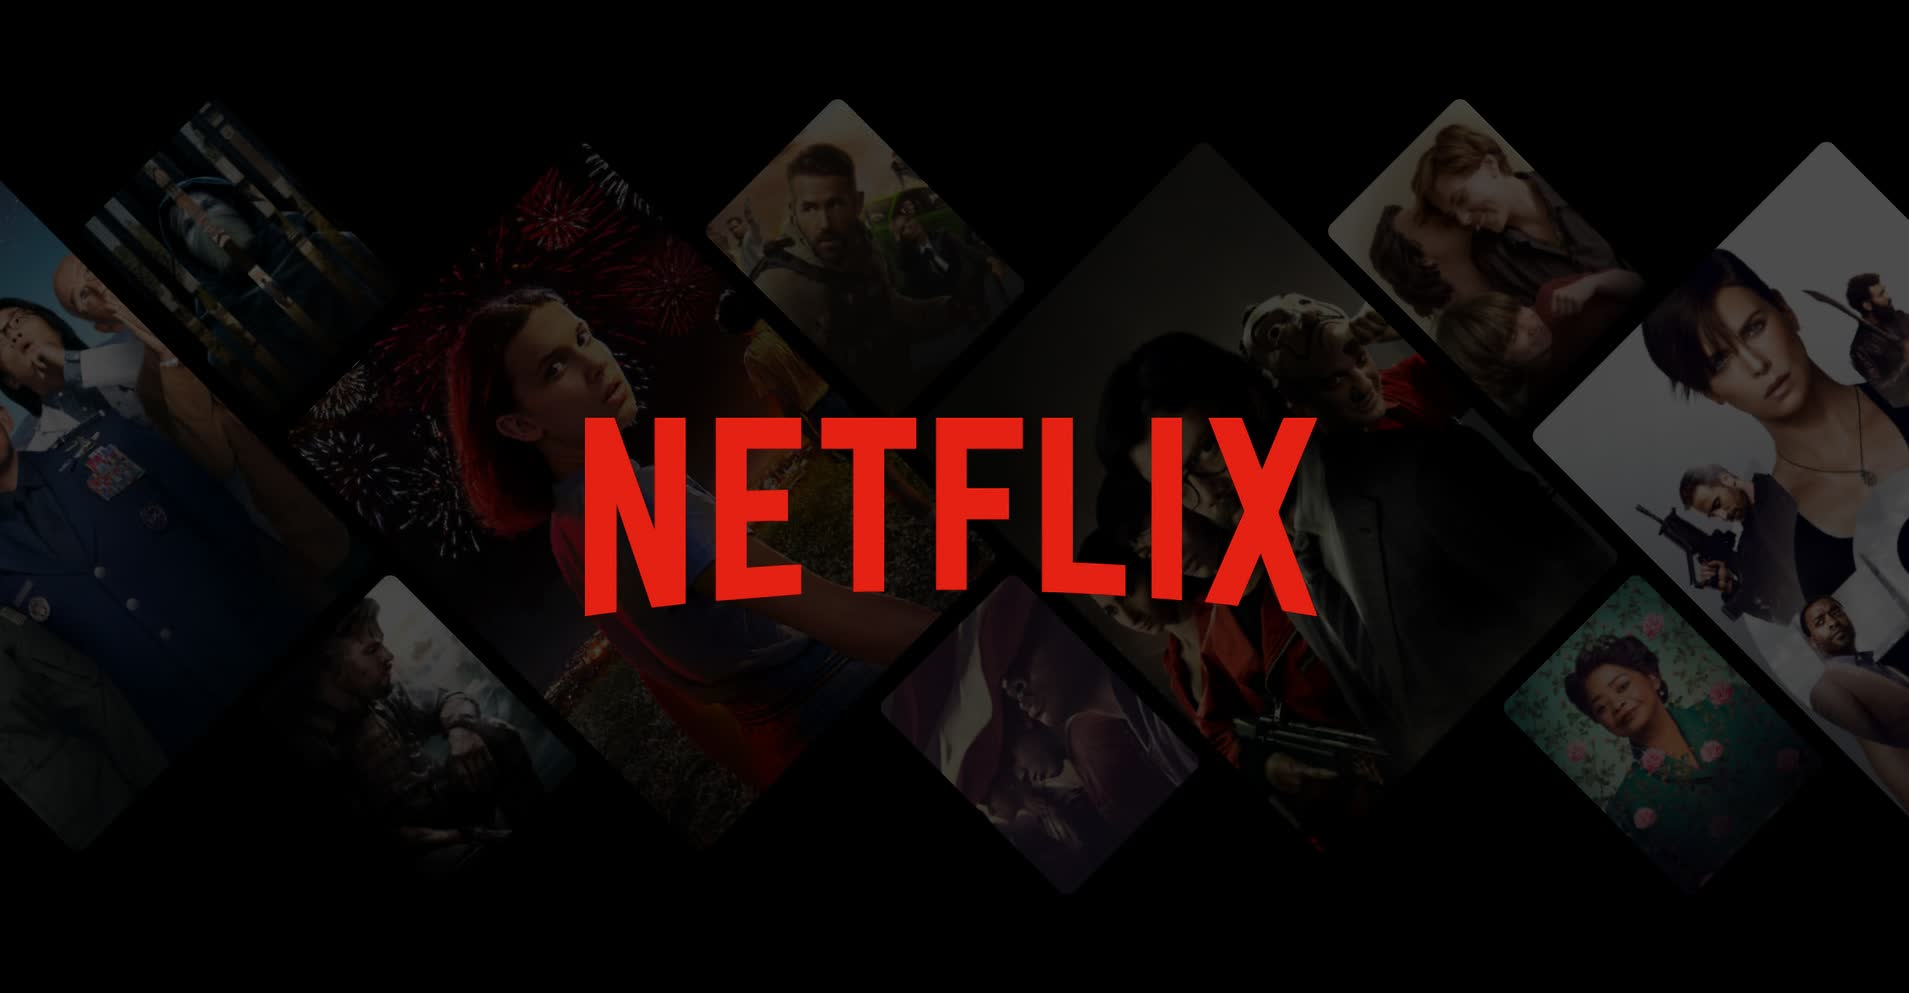 You don't have to be a Netflix subscriber to watch these free original movies and TV shows